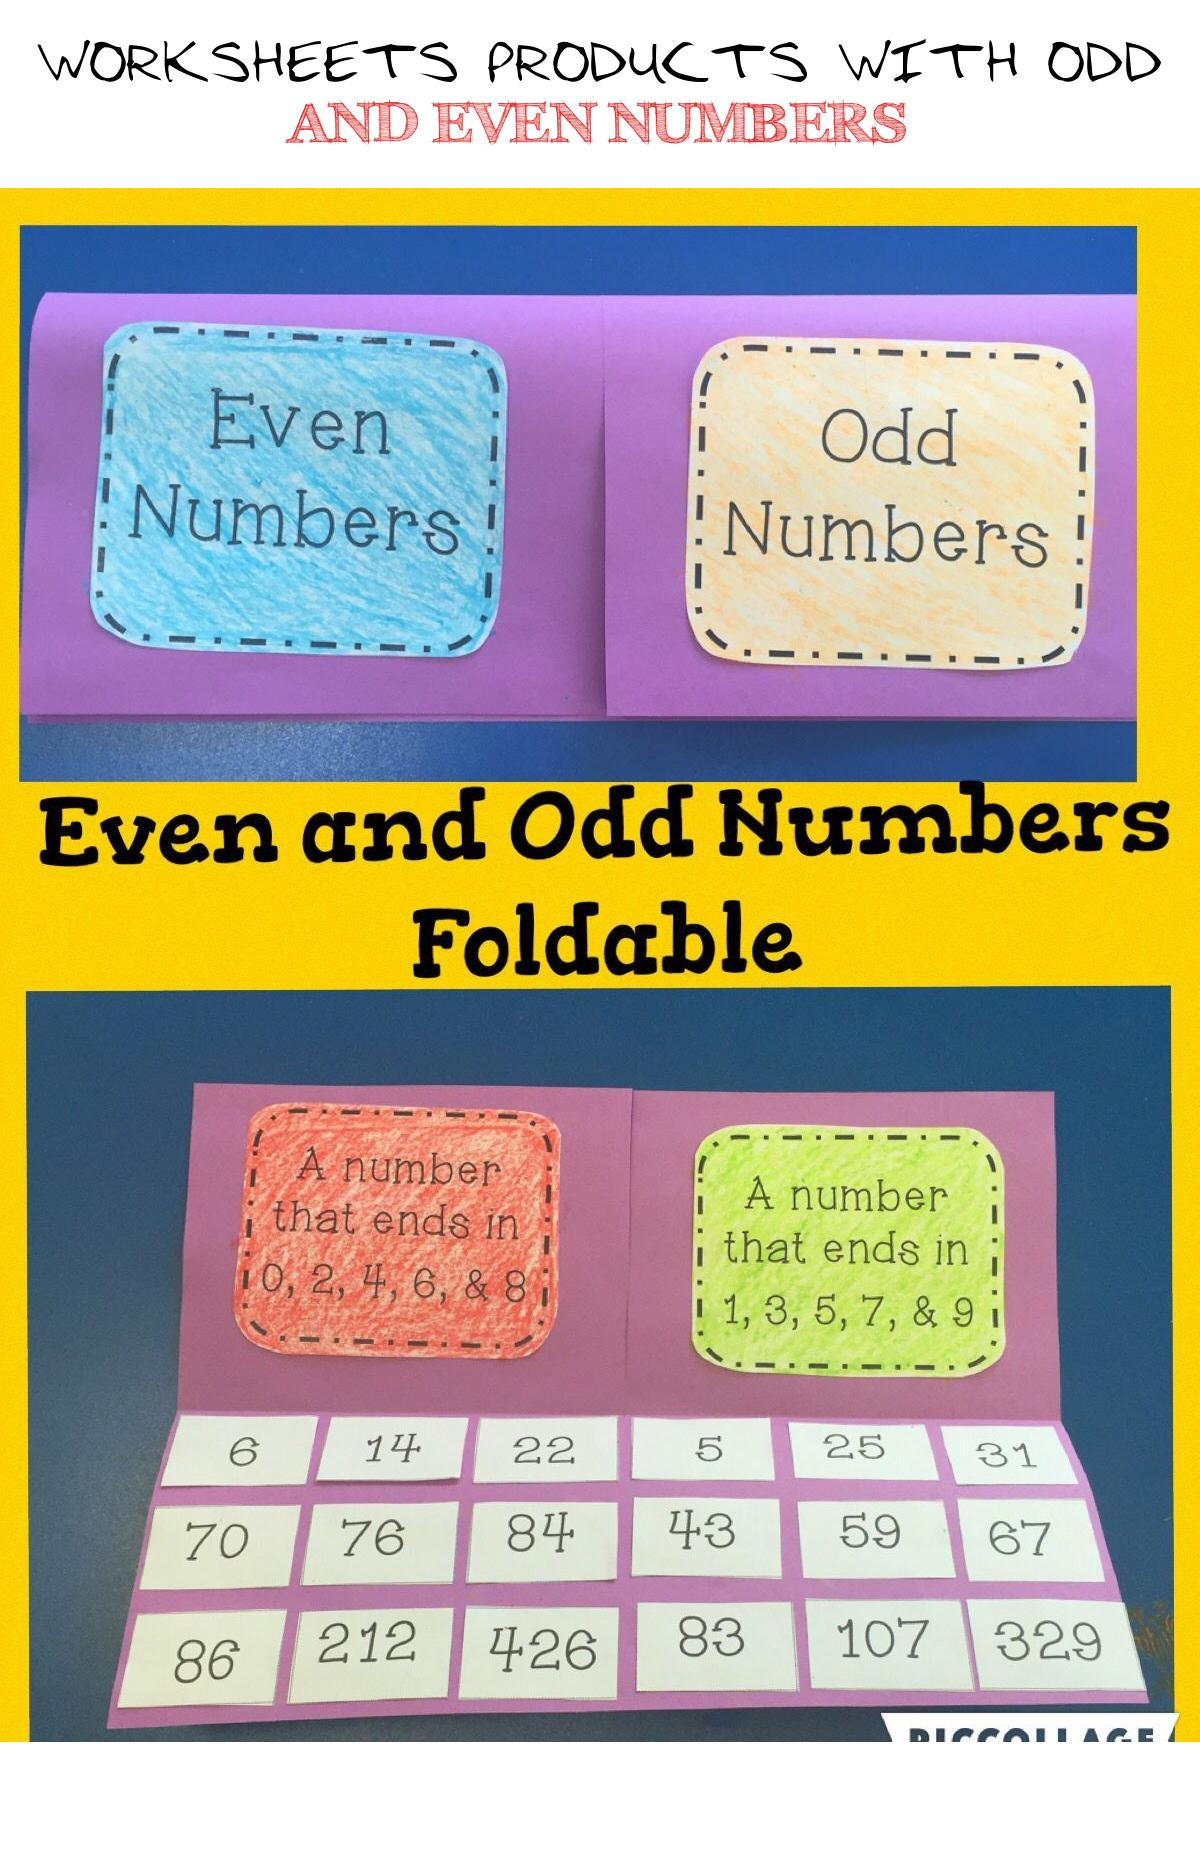 30 Odd And Even Numbers Worksheet